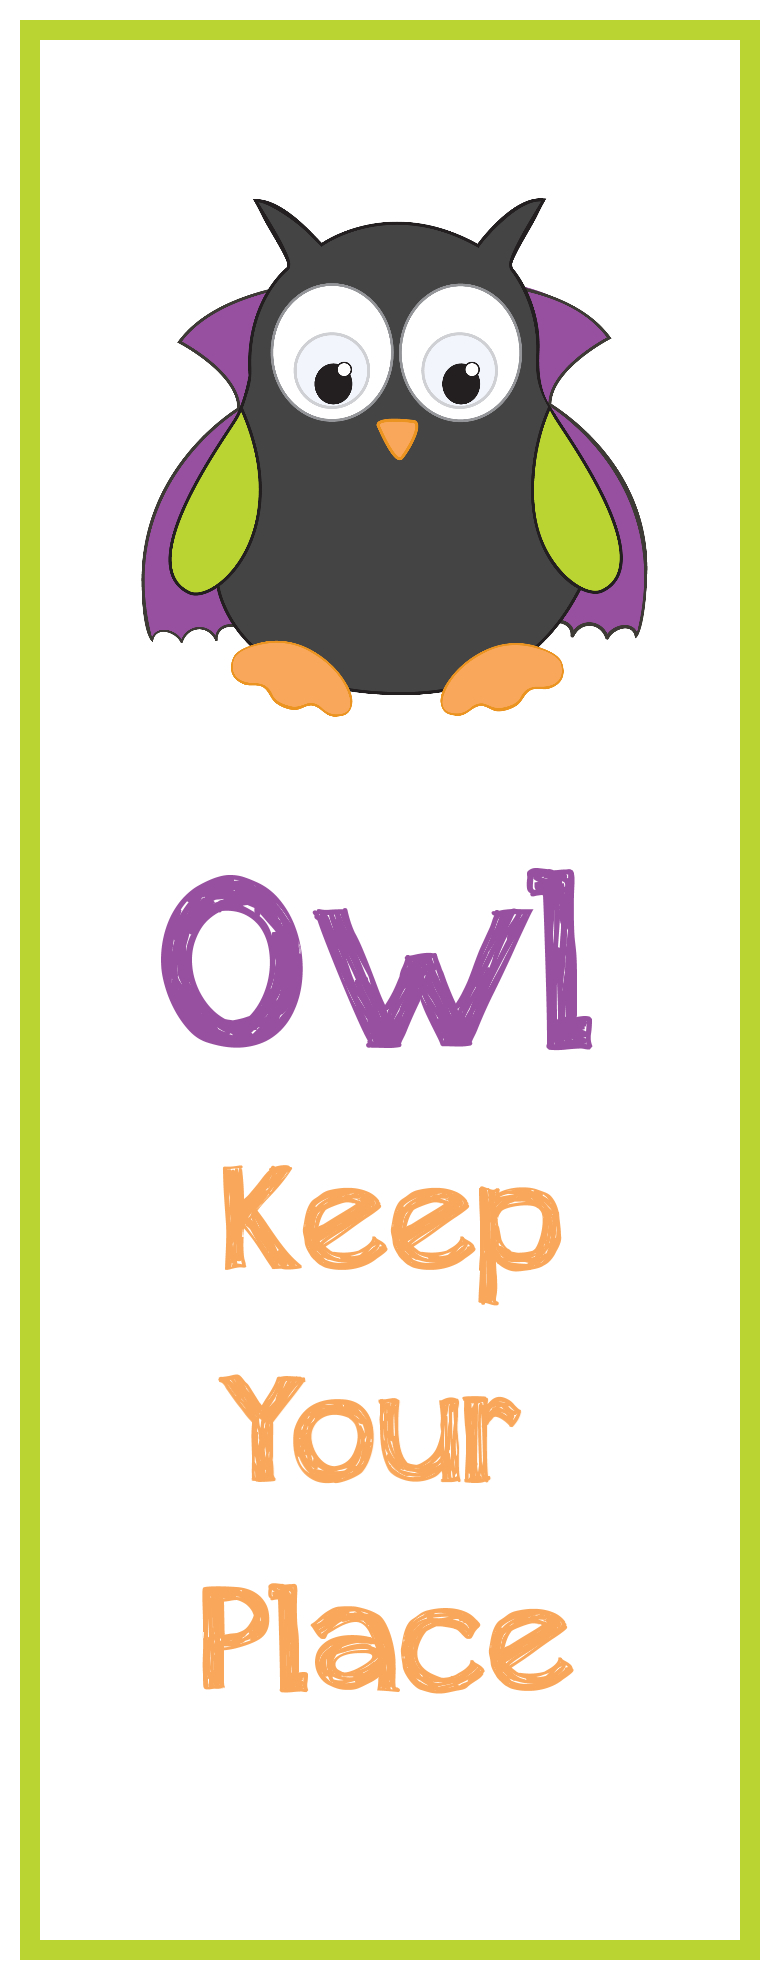 Free Printable Halloween Bookmarks - Free Printable Owl Bookmarks